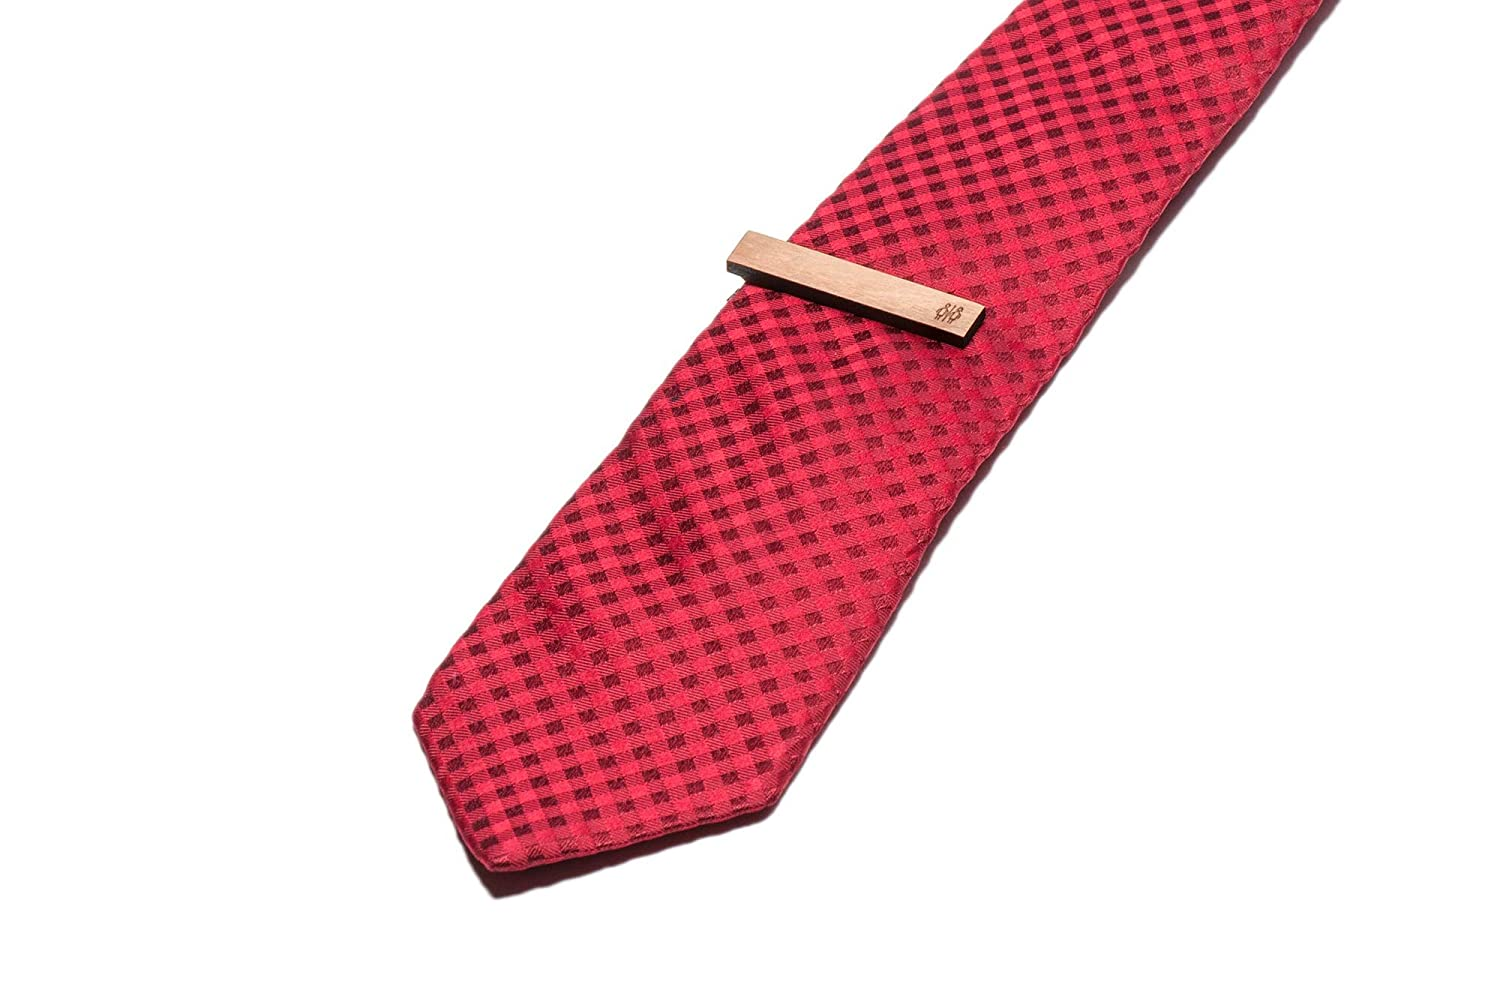 Wooden Accessories Company Wooden Tie Clips with Laser Engraved Bathroom Sign Design Cherry Wood Tie Bar Engraved in The USA